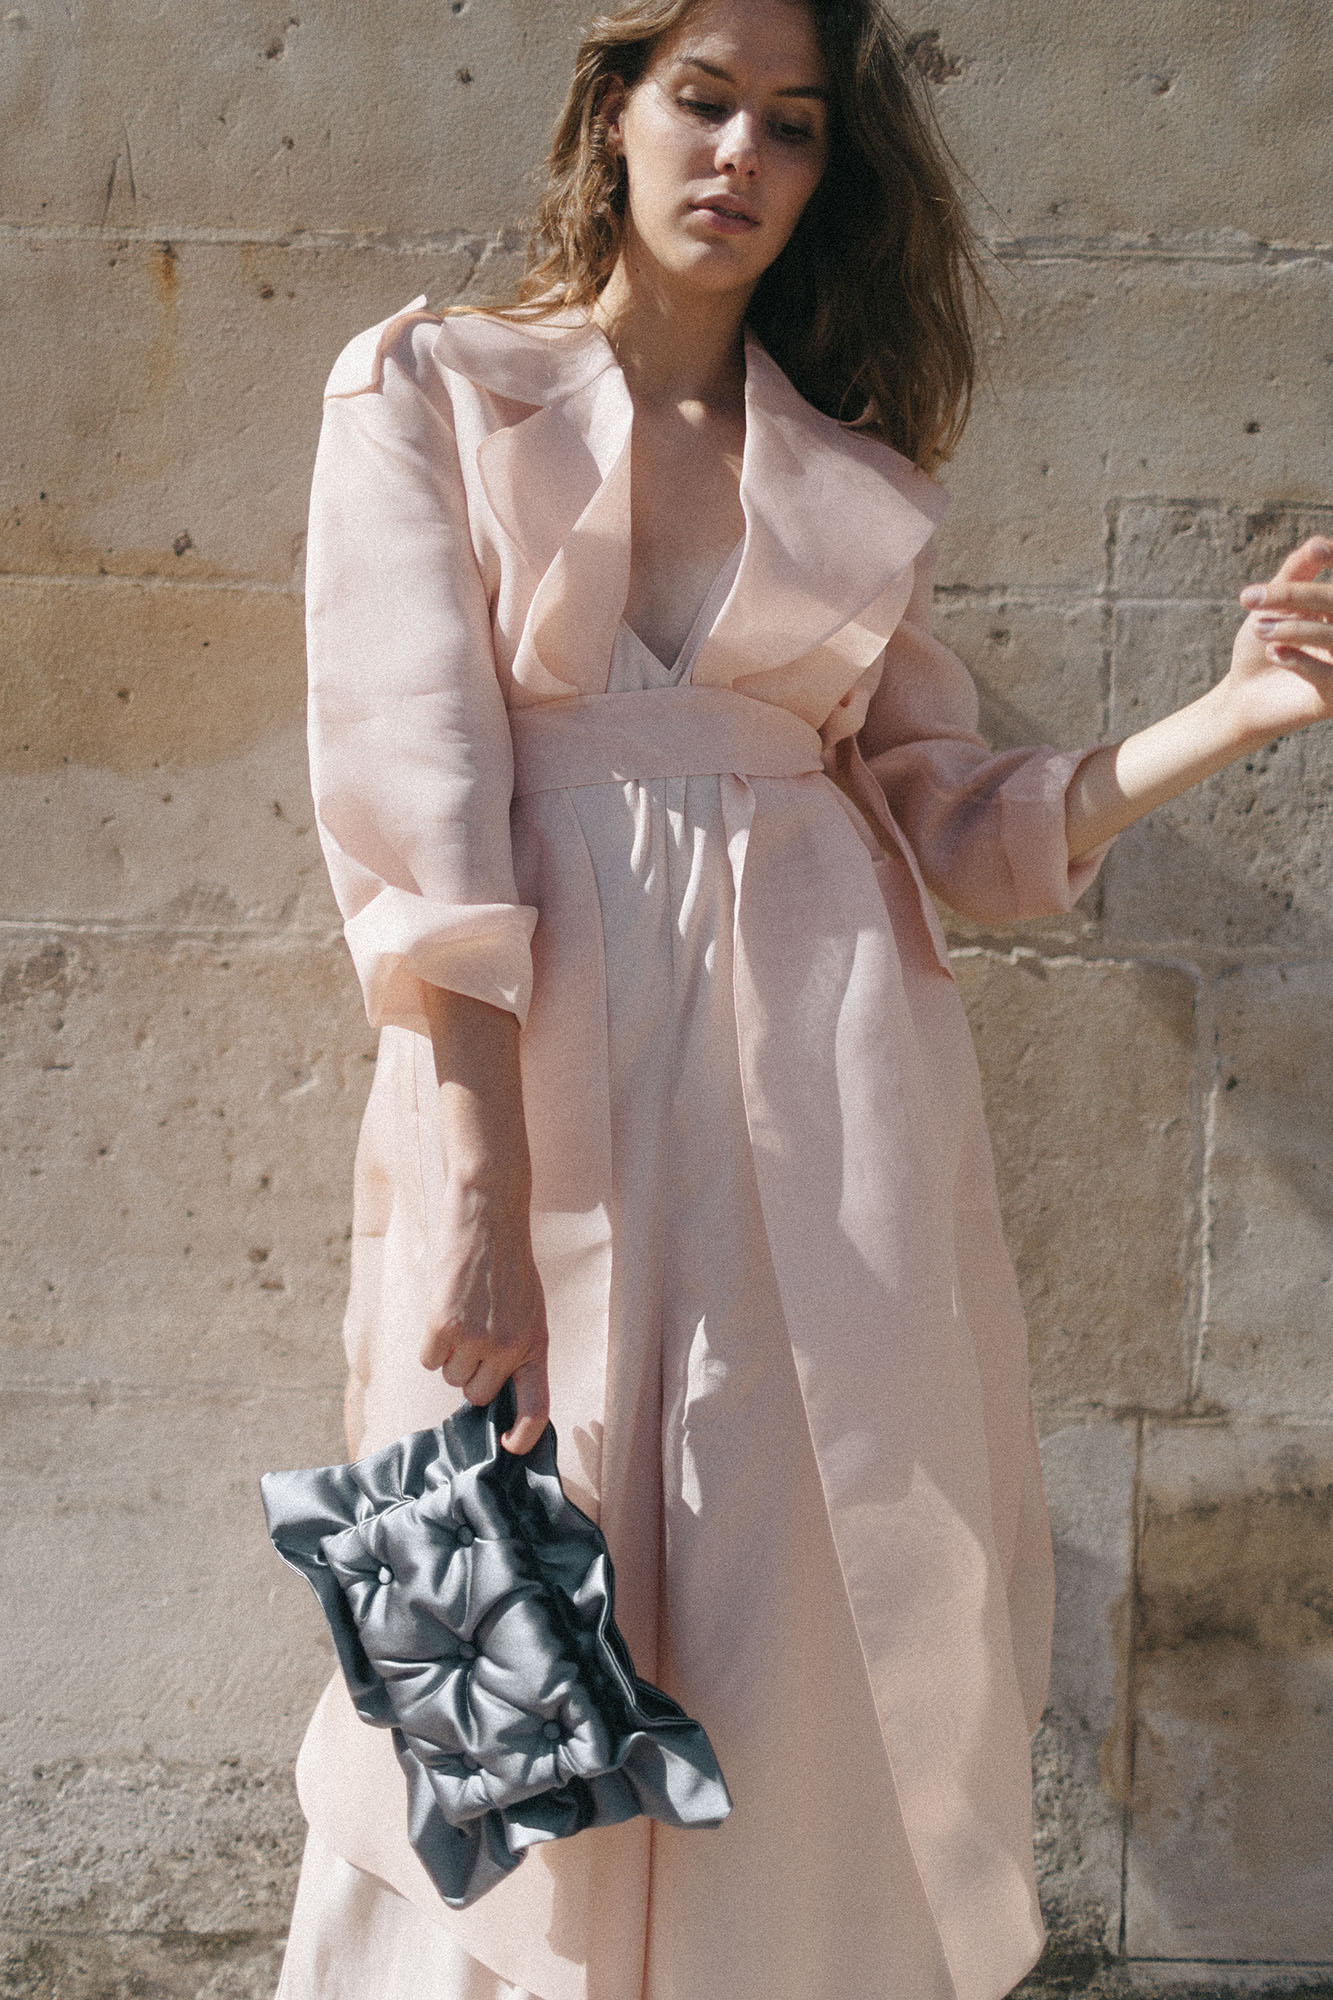 Model in front of the wall in Palais Royal with Laimushka dark grey quilted silk pillow clutch bag